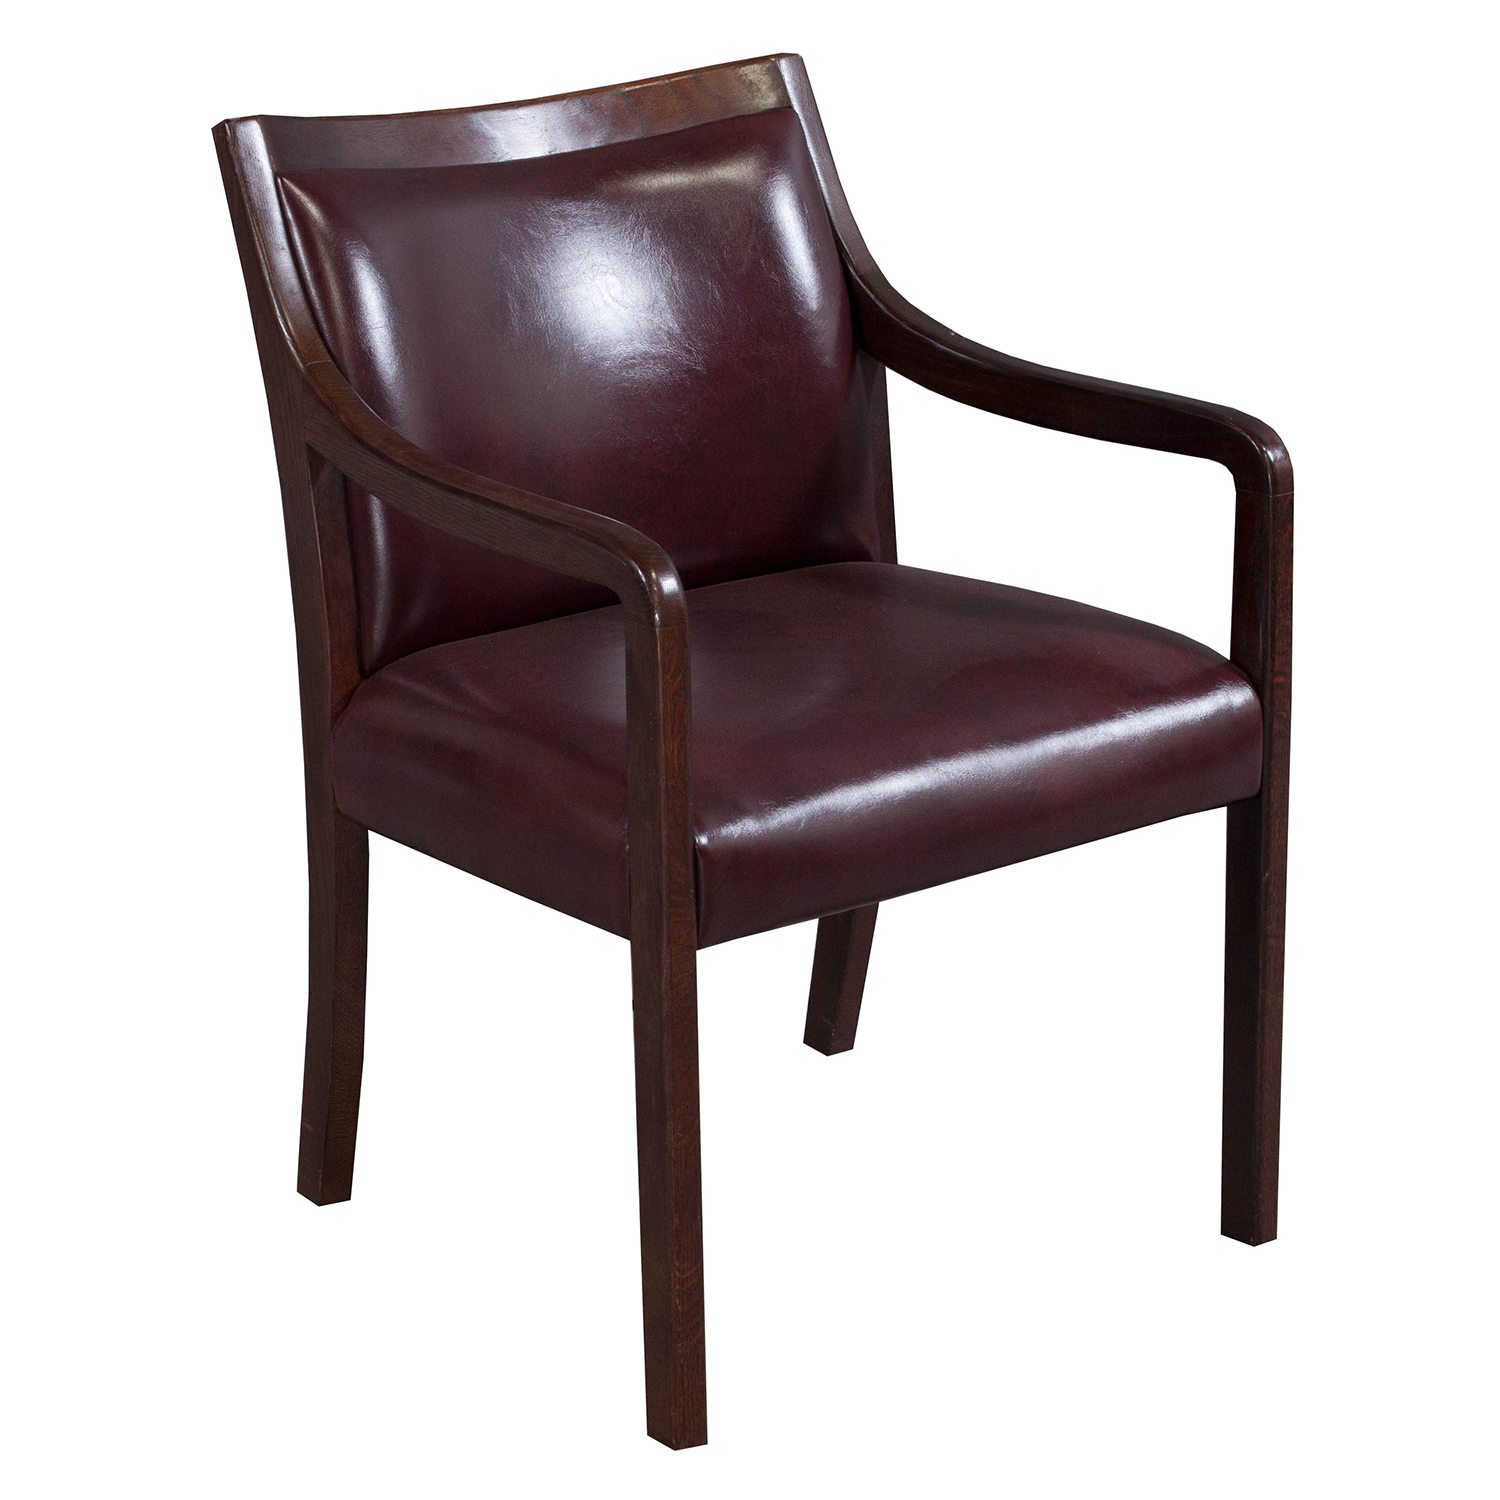 office side chairs ergonomic chair data stout used walnut leather burgundy national